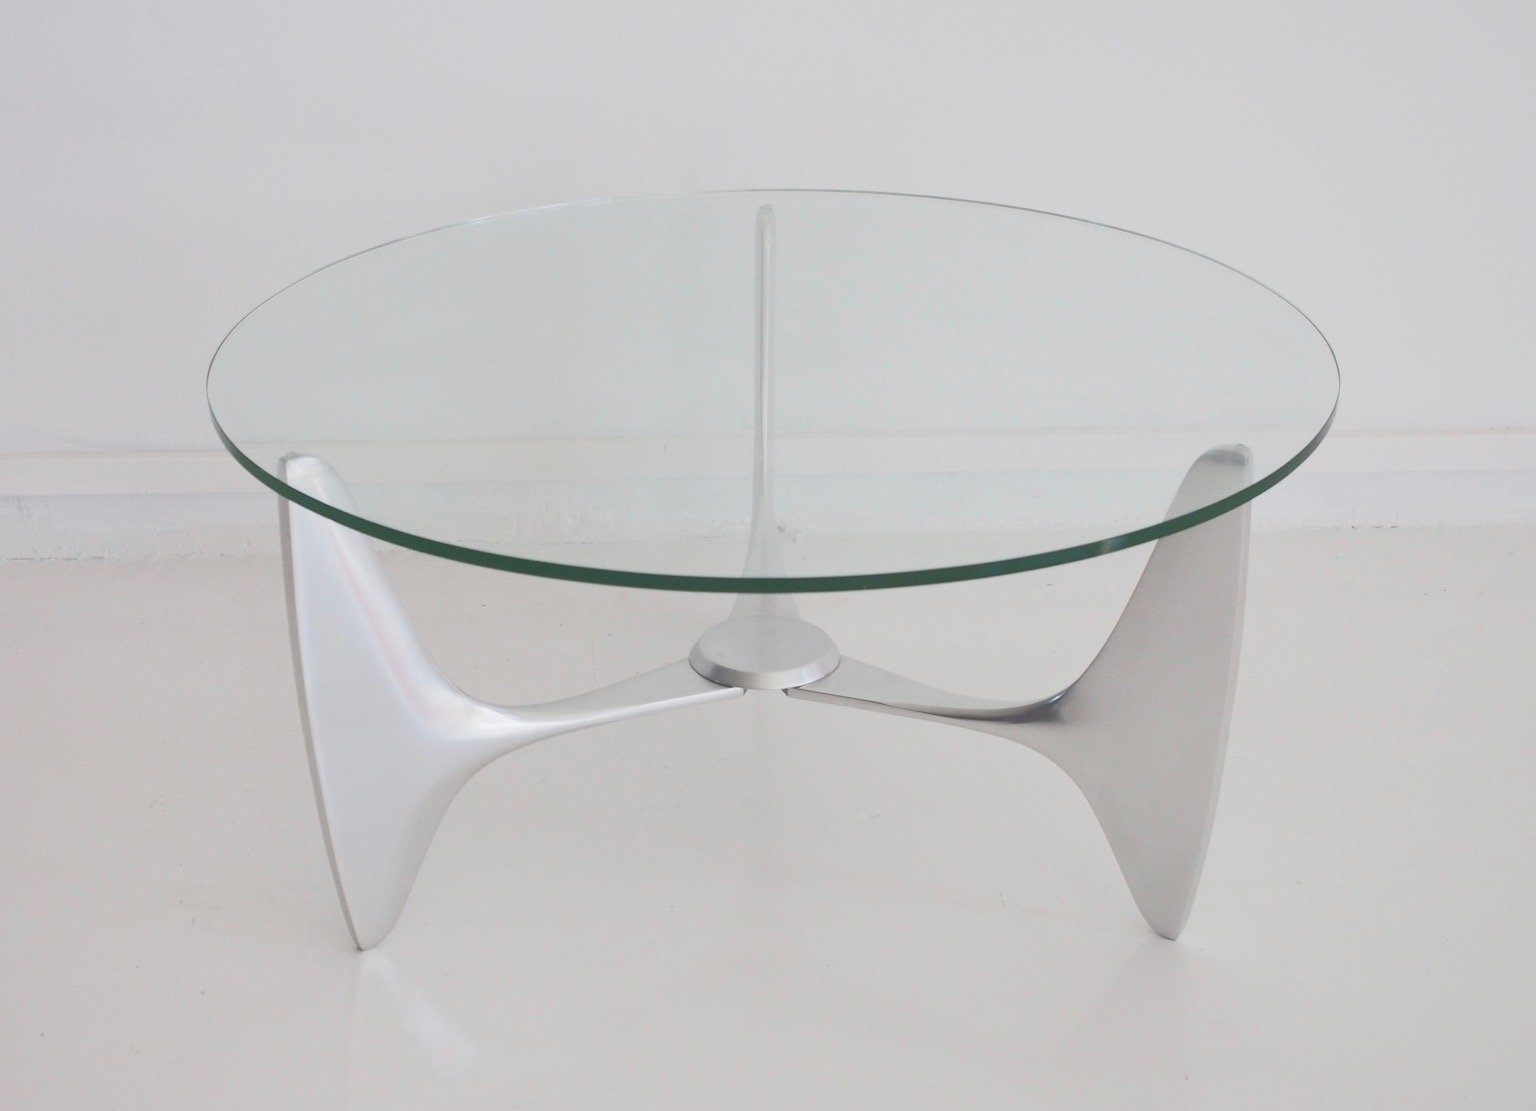 Vintage Coffee Table With Tripod Aluminum Frame For Sale At Pamono